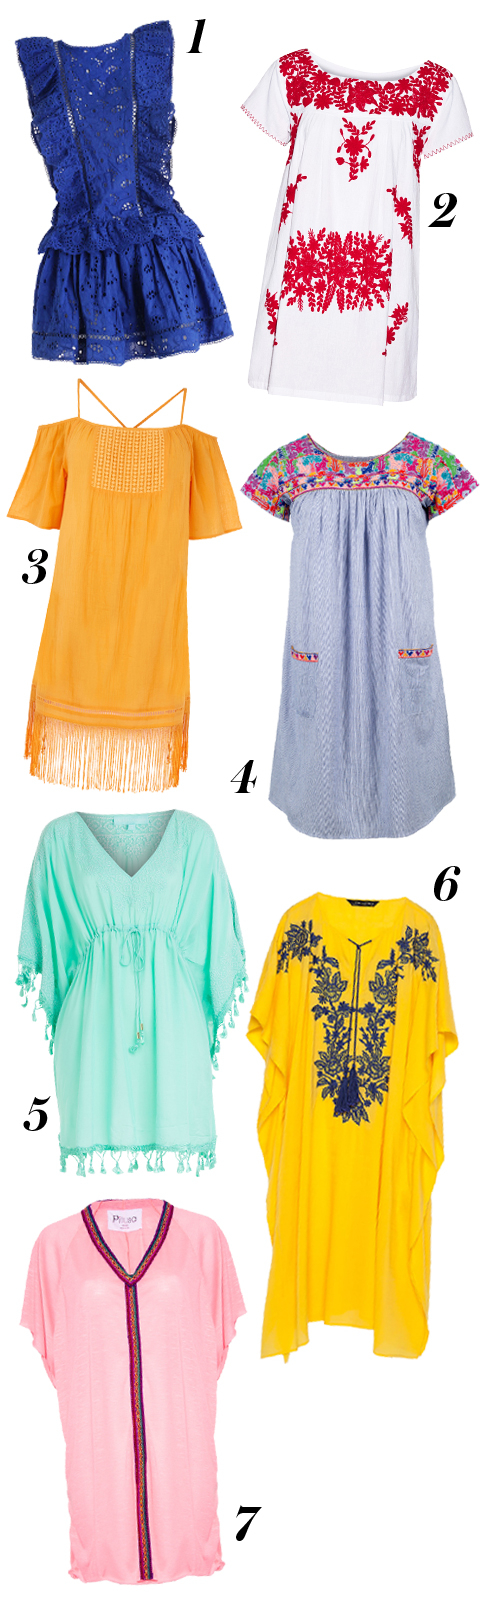 Beach Coverups - Embed 1